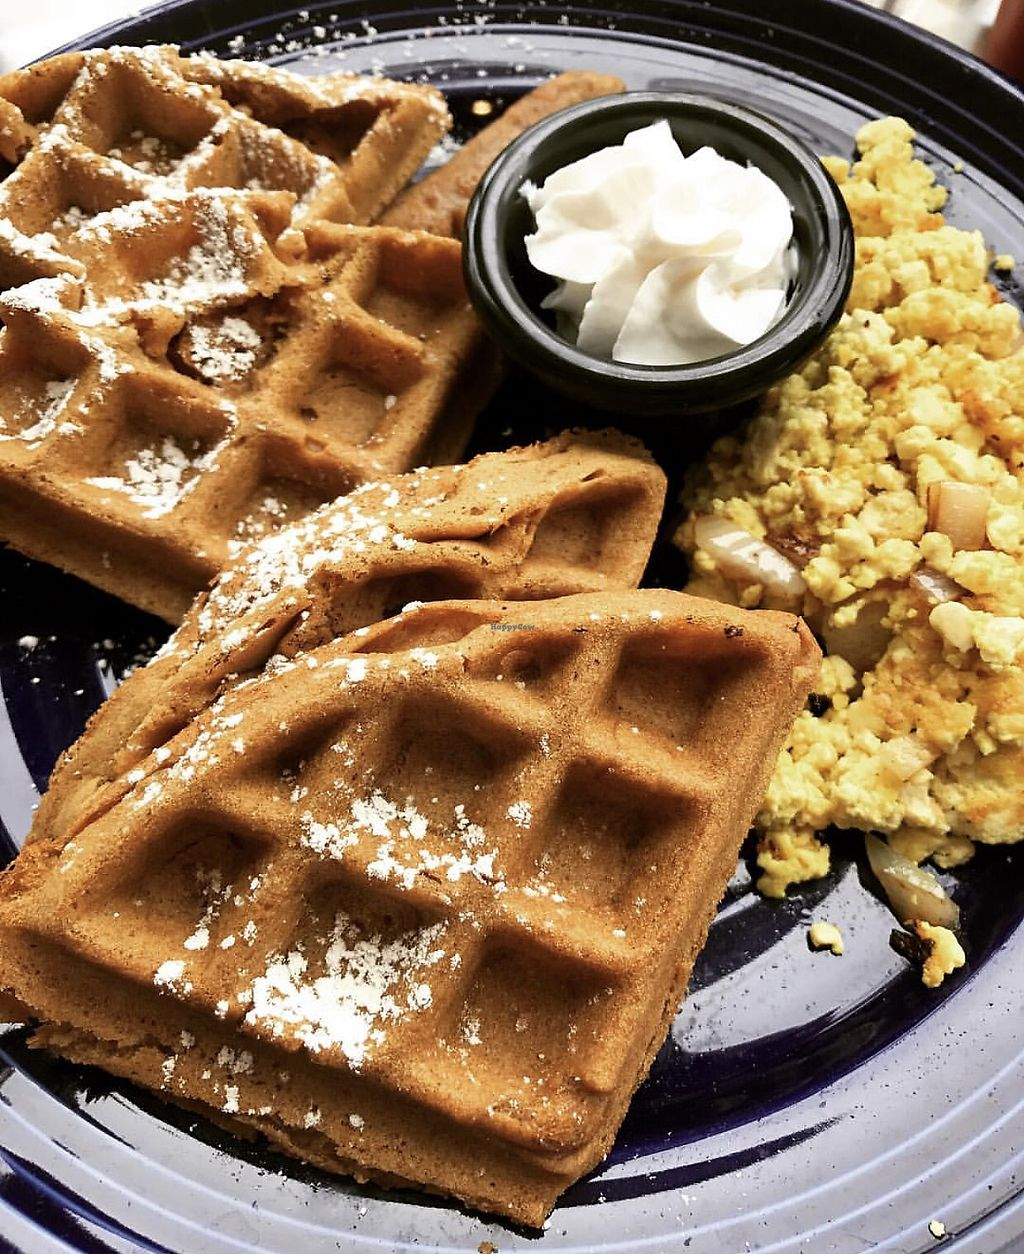 "Photo of The Grain Cafe  by <a href=""/members/profile/SoWo1999"">SoWo1999</a> <br/>Waffles and scrambled tofu <br/> September 25, 2017  - <a href='/contact/abuse/image/38090/308513'>Report</a>"